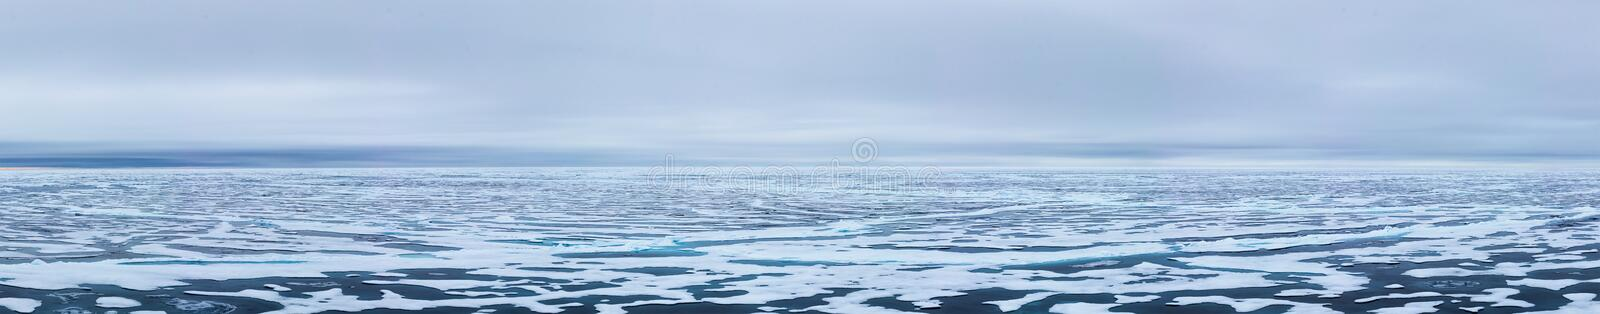 Ice edge at 82 41.01 degrees North from Svalbard stock photography